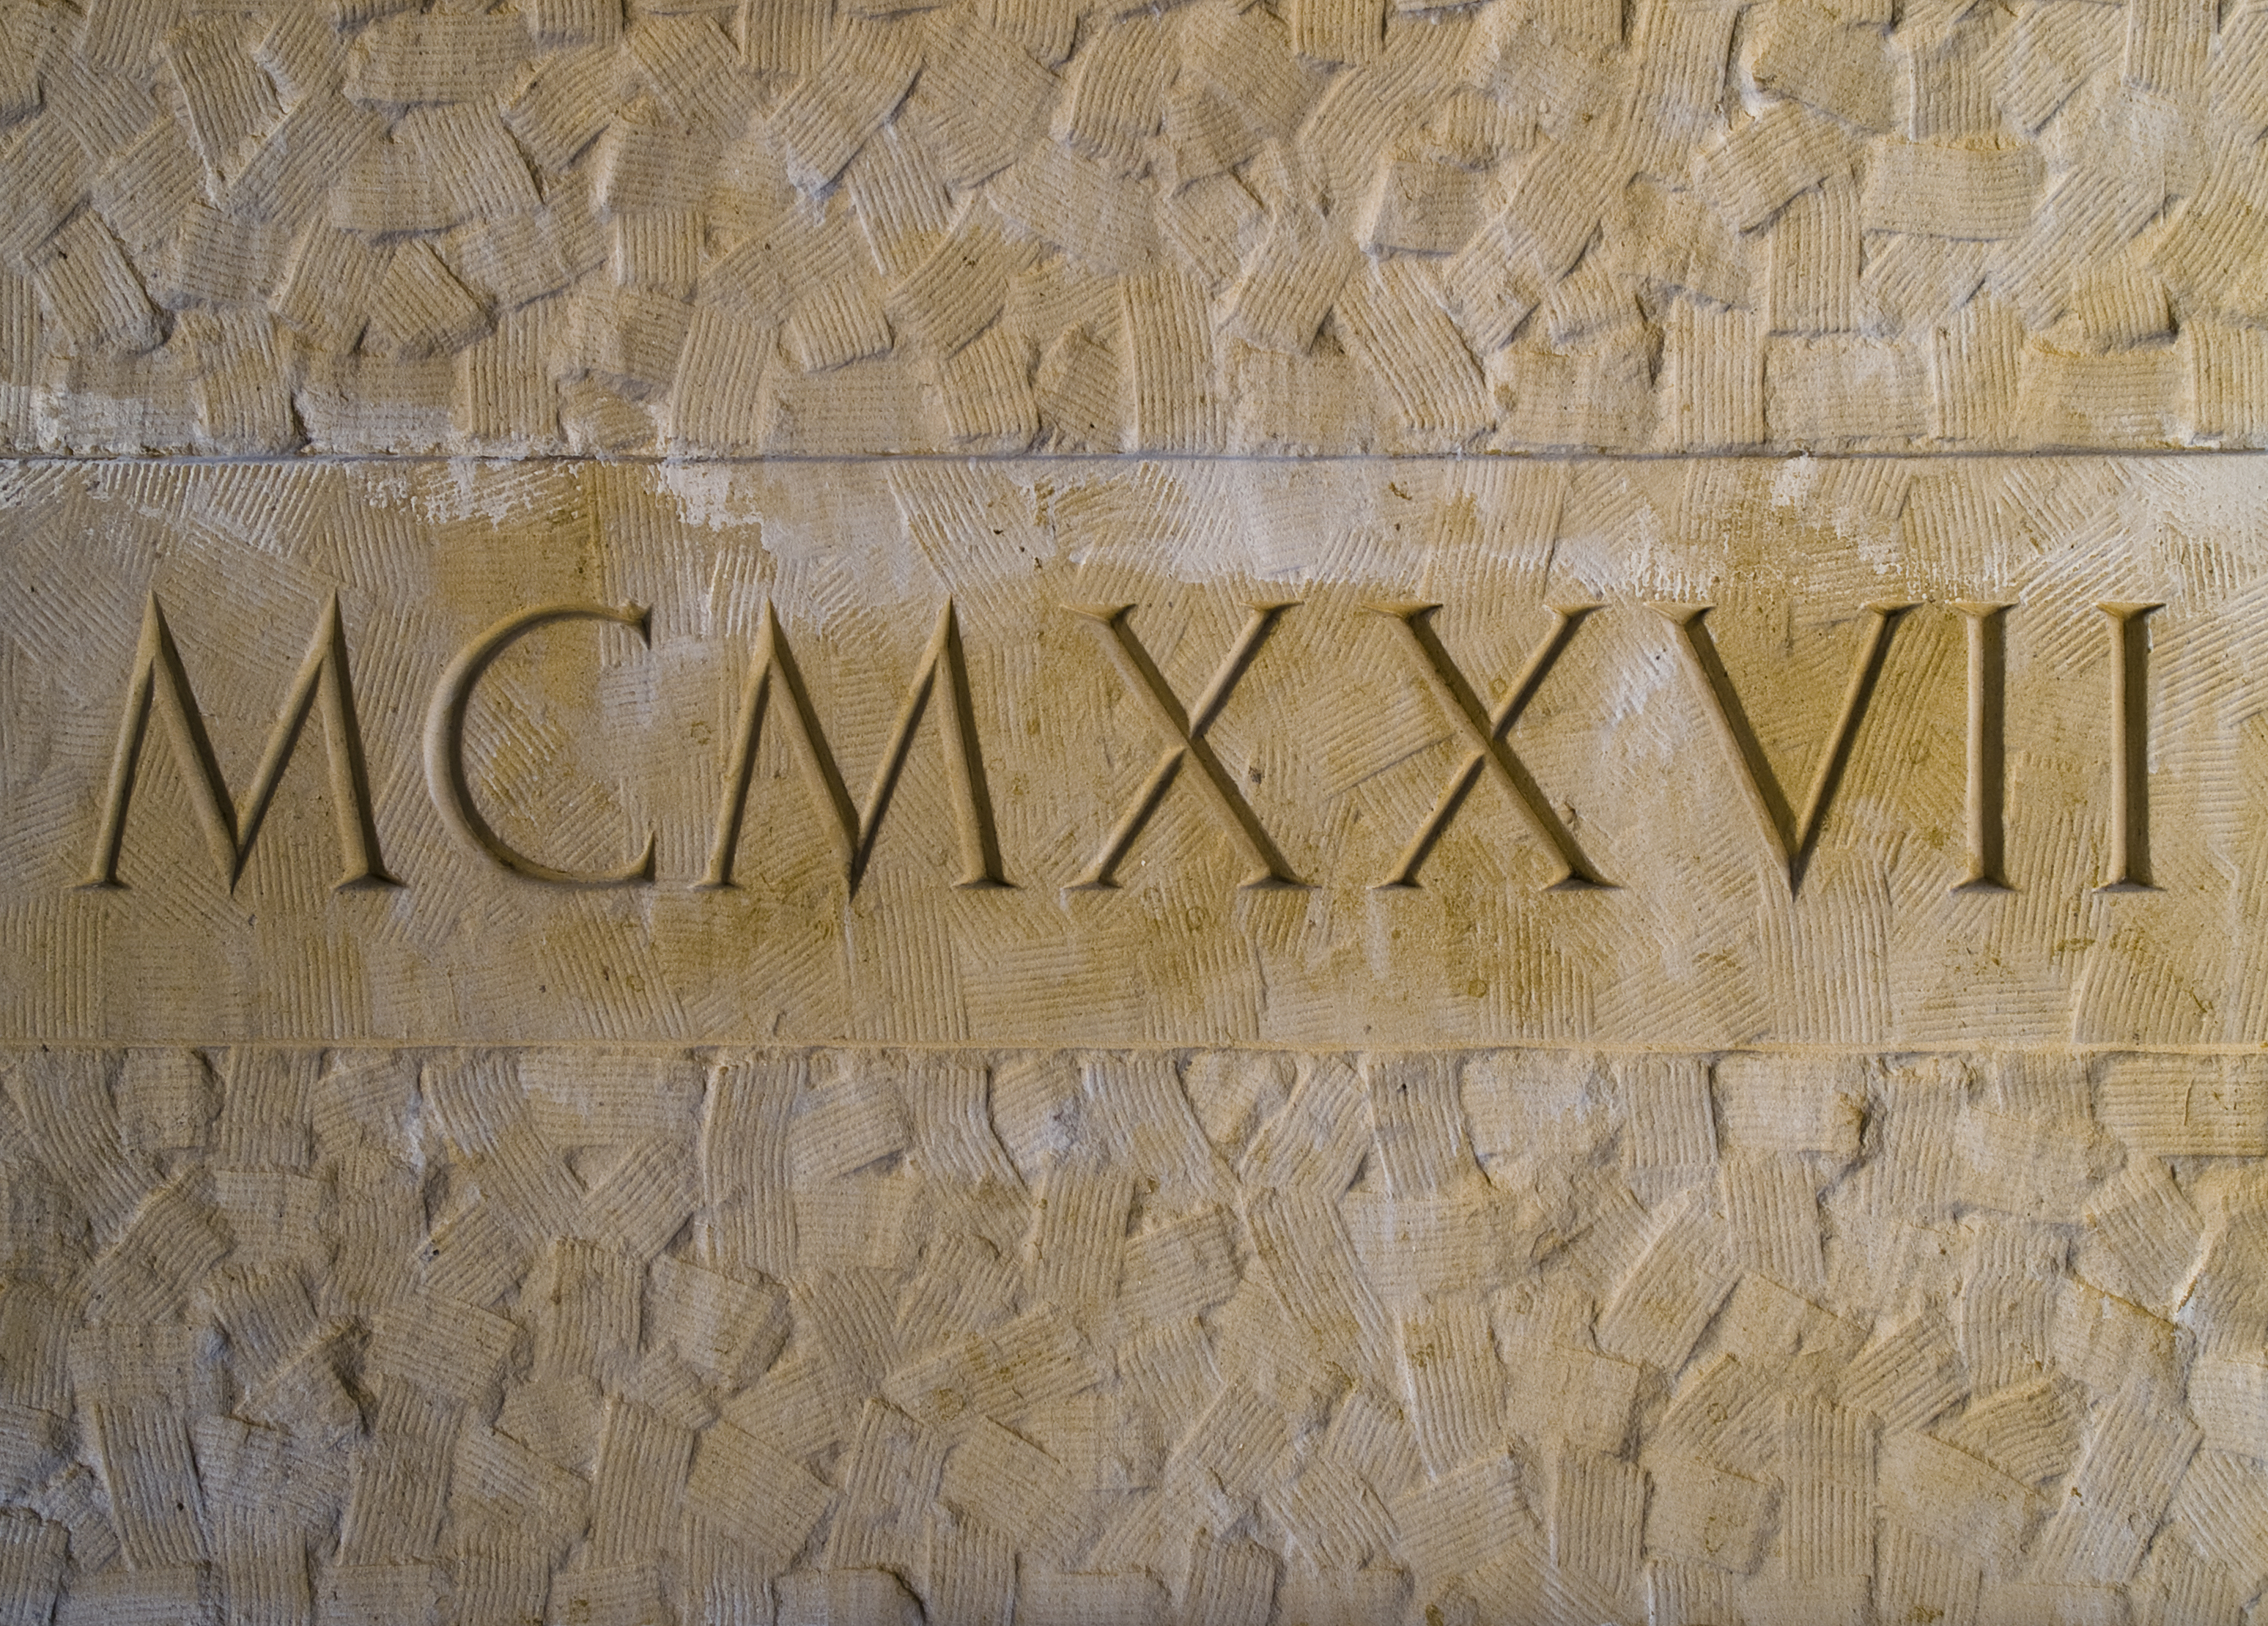 How To Read Roman Numerals